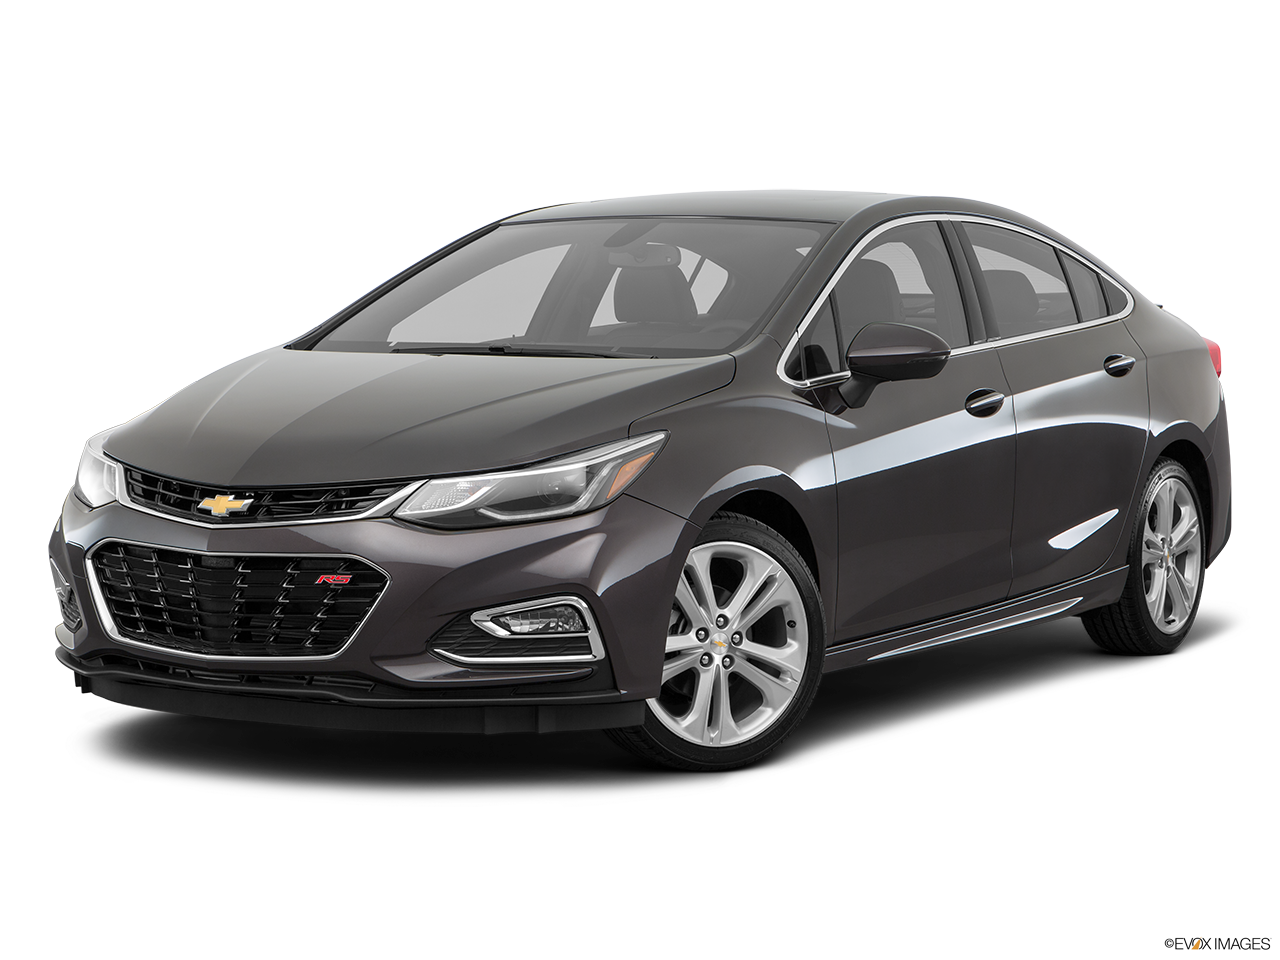 2016 chevy cruze albany ny depaula chevrolet. Black Bedroom Furniture Sets. Home Design Ideas